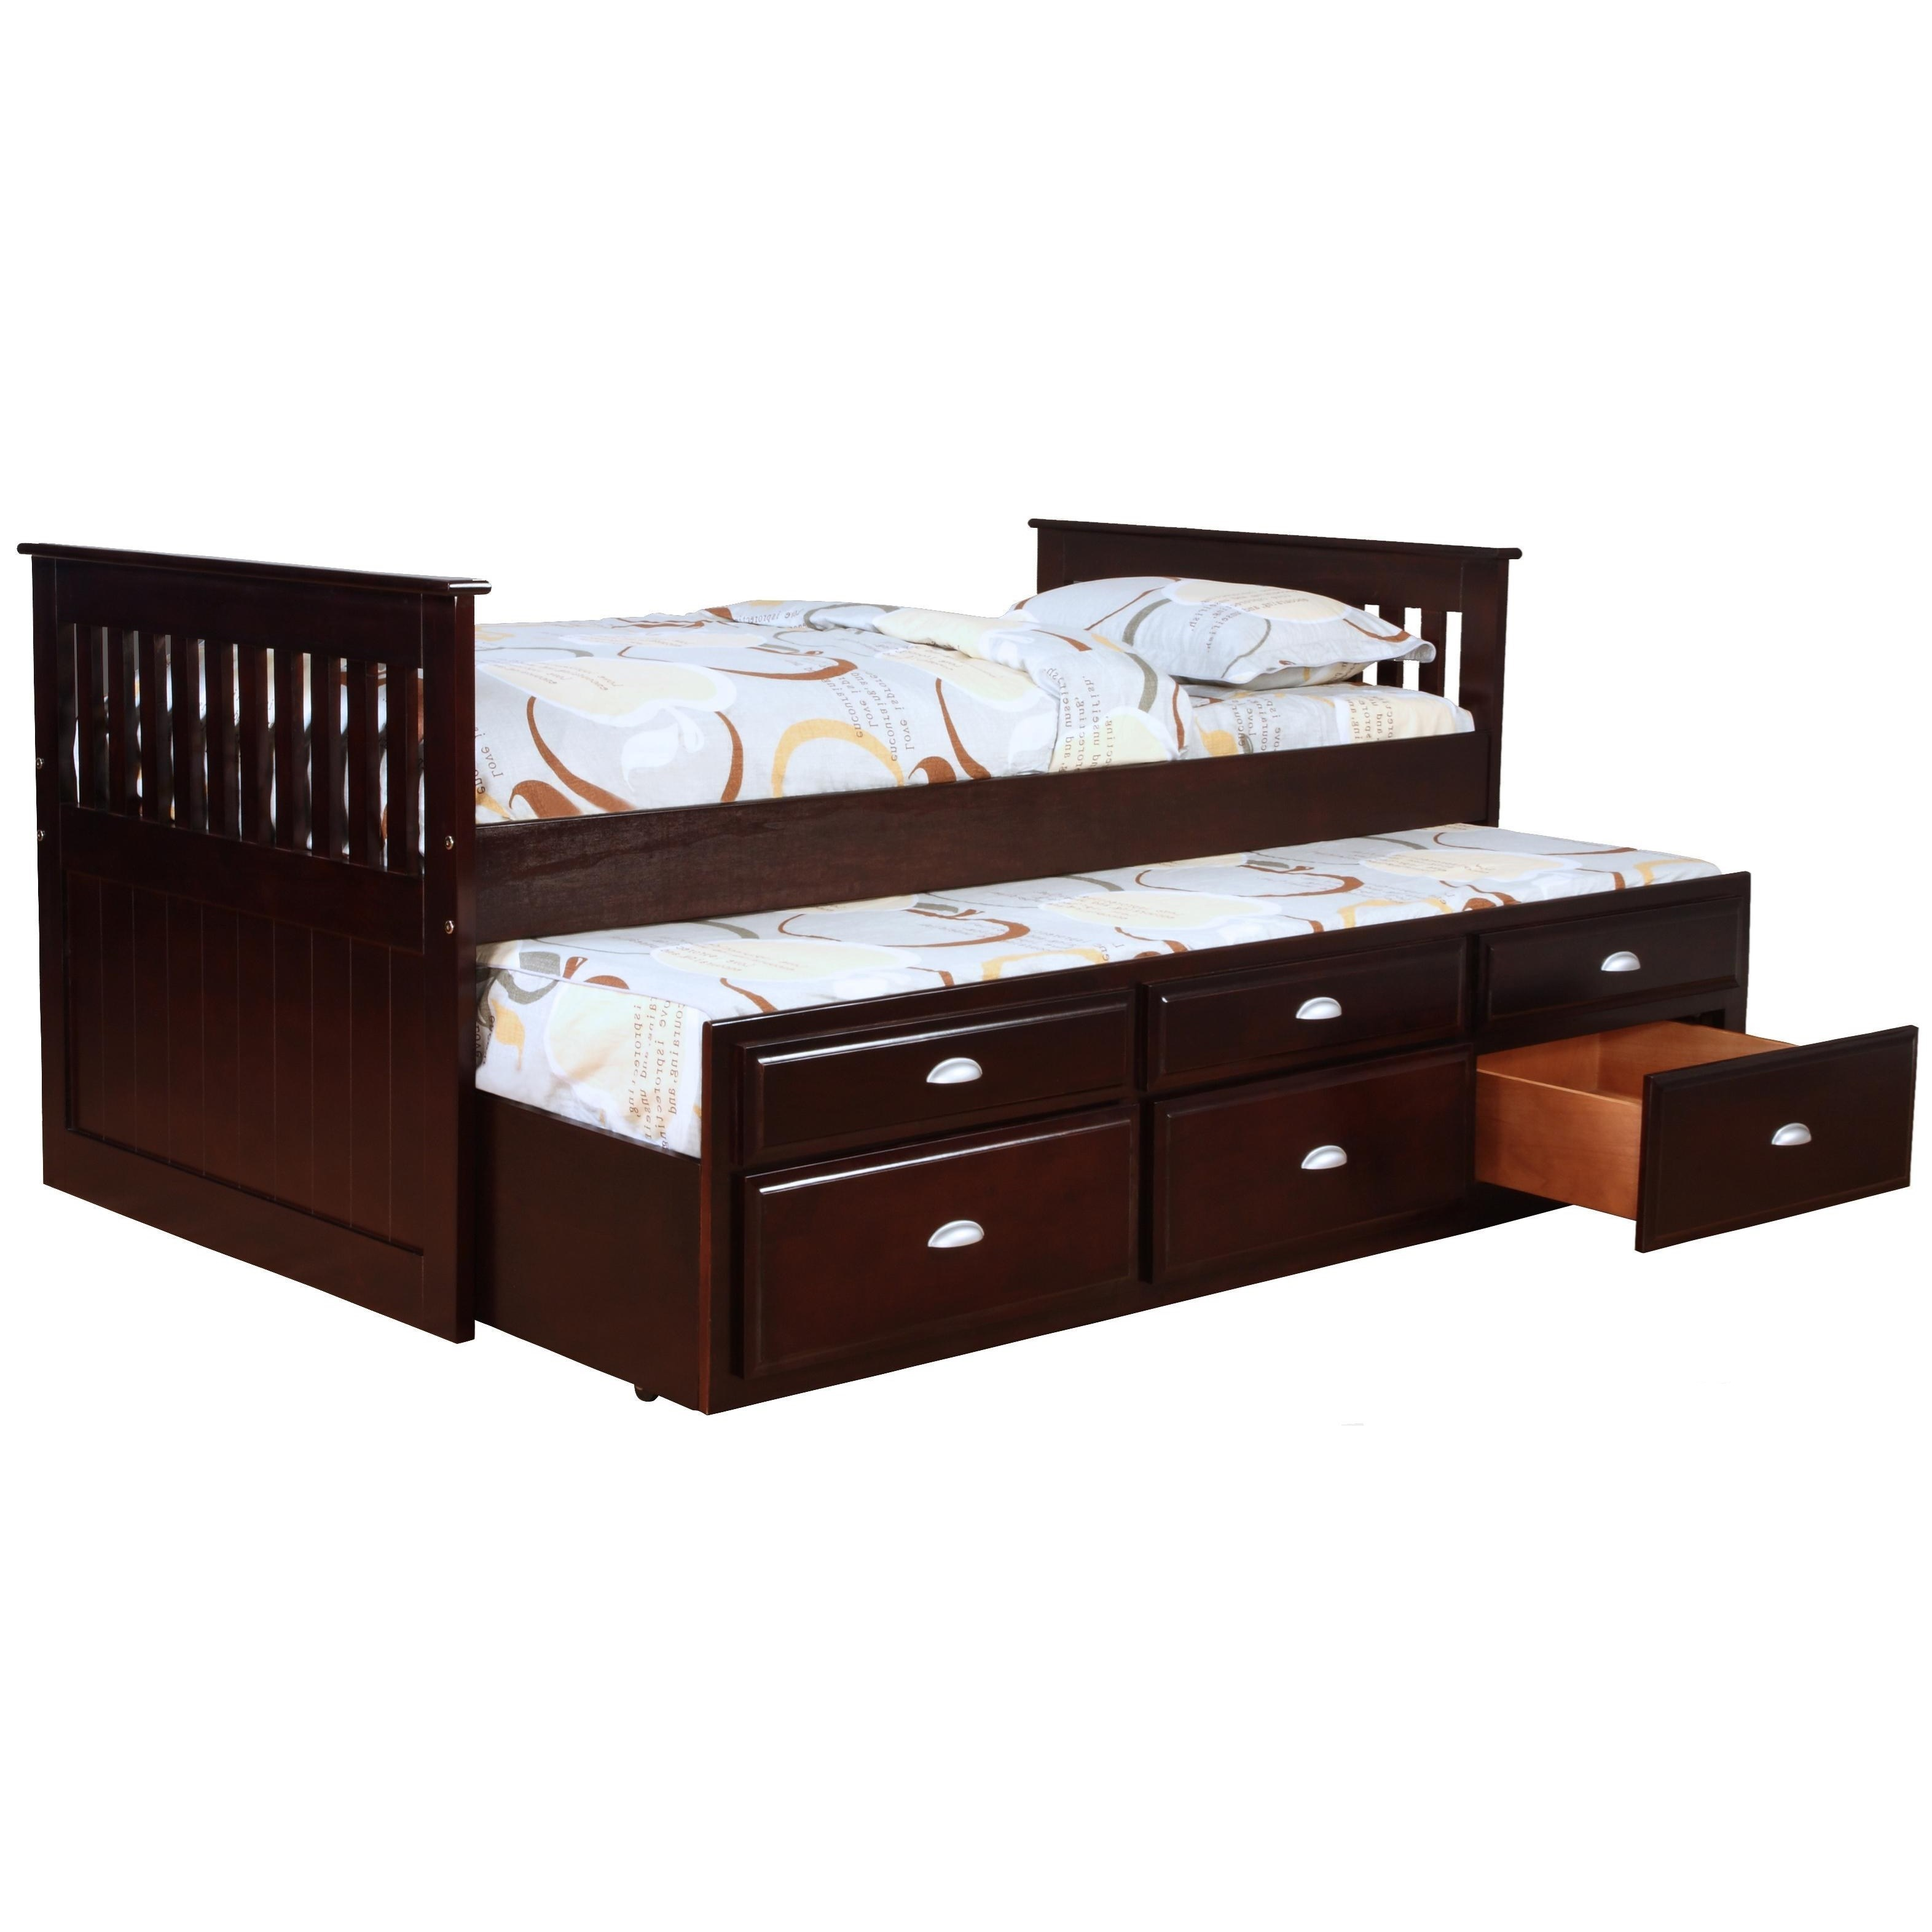 Logan Captainu0027s Bed with Trundle and Storage  sc 1 st  Miskelly Furniture & Logan Captainu0027s Bed with Trundle and Storage | Miskelly Furniture ...